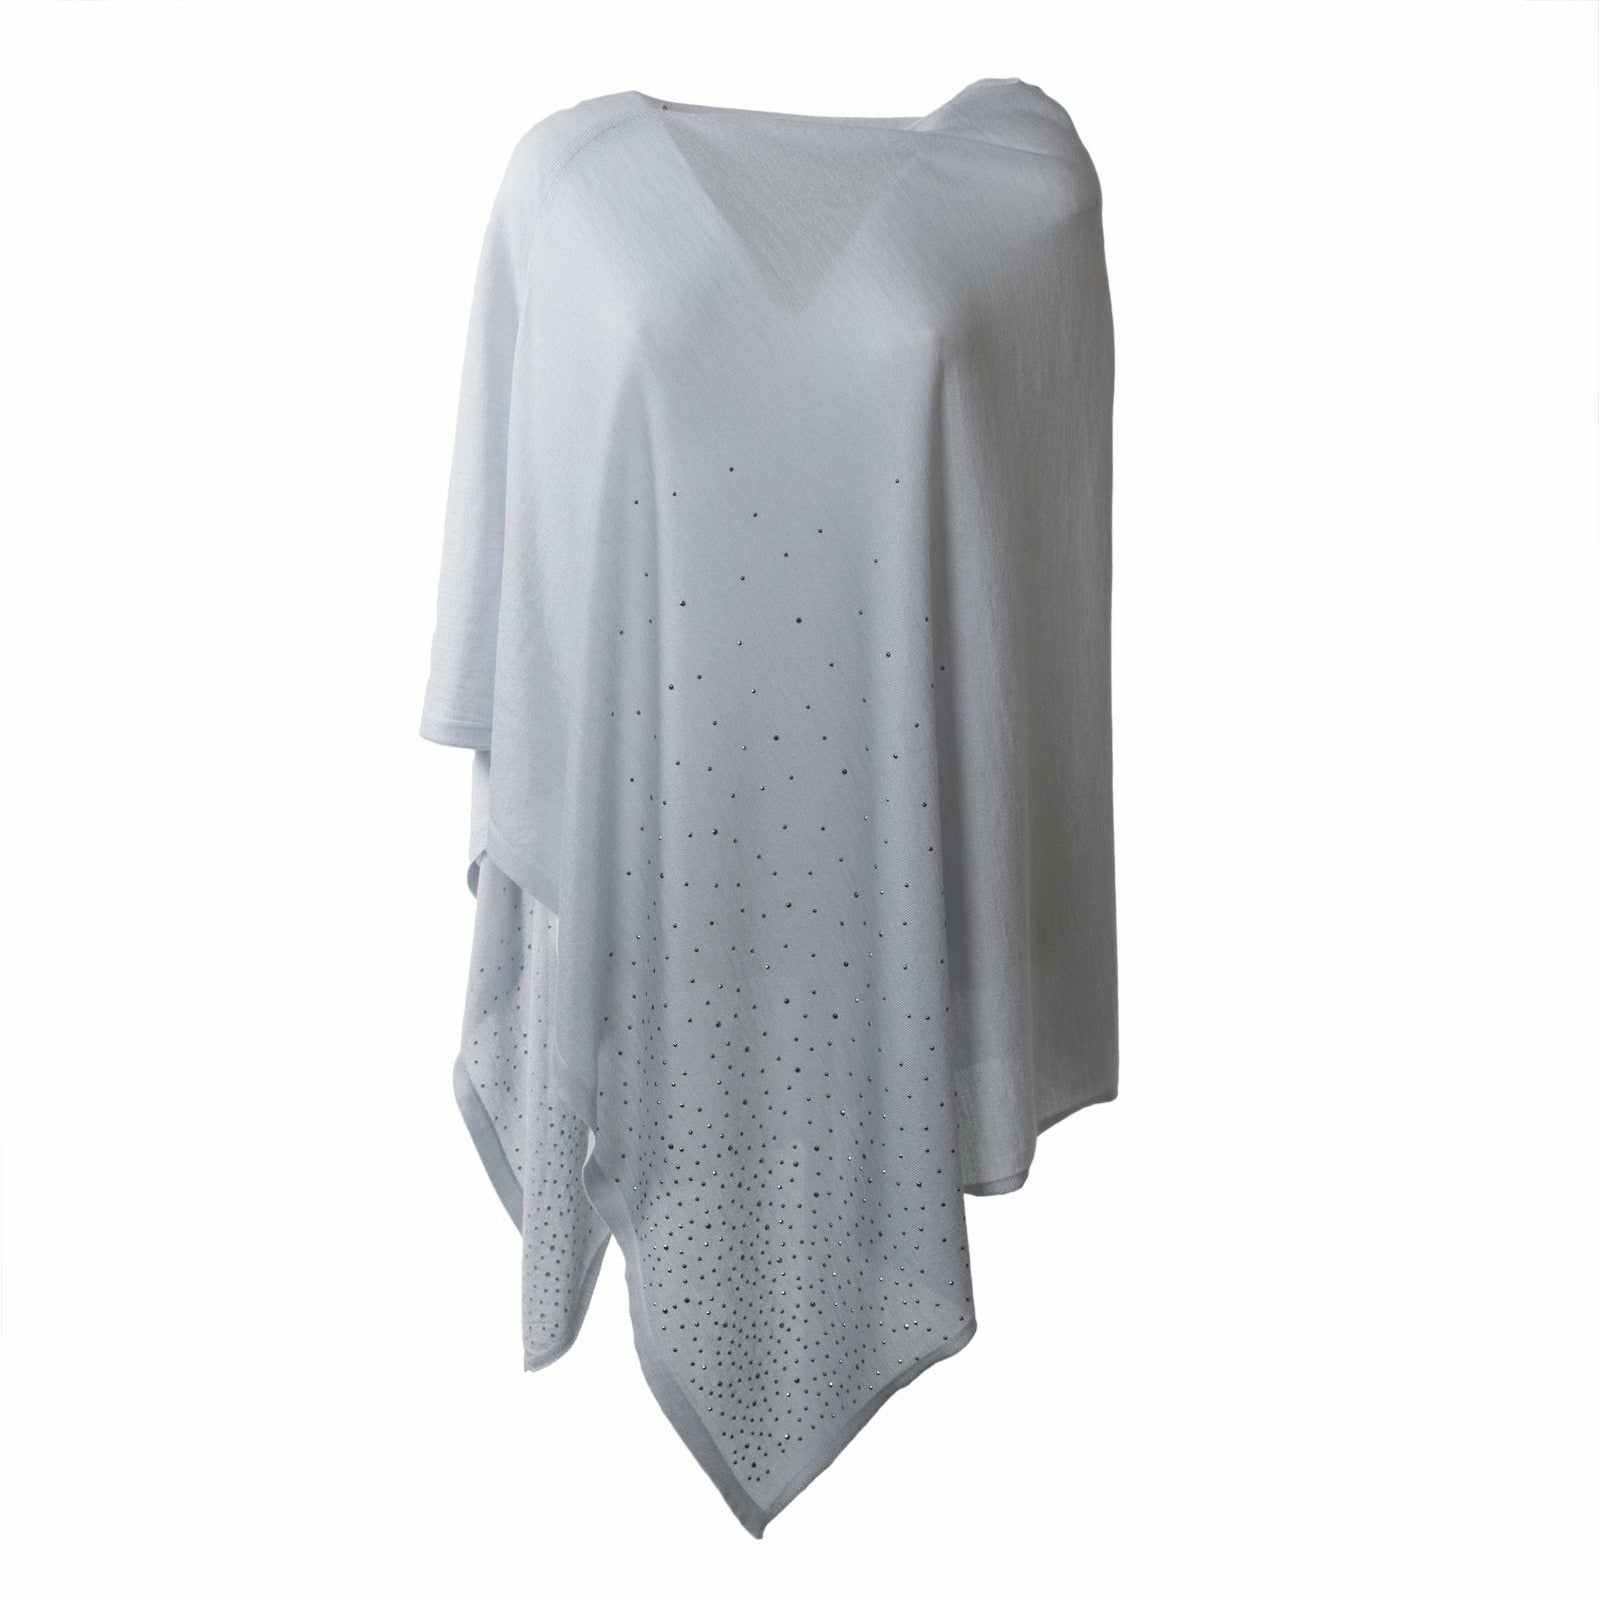 Large Pashmina Poncho With Studs in White - Jennifer Tattanelli